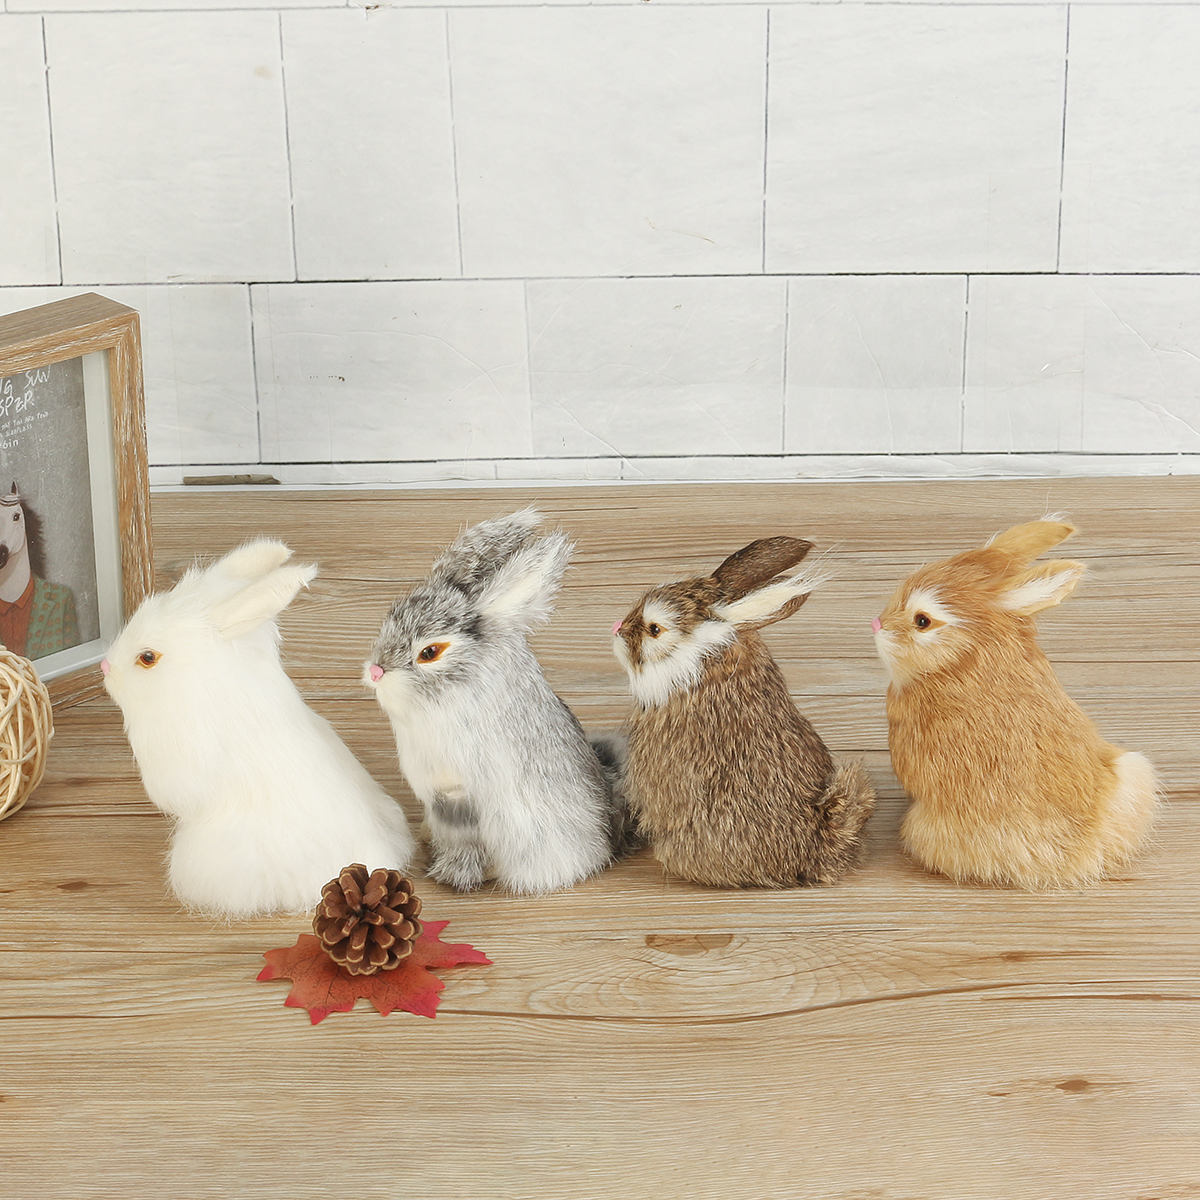 Gray/Yellow/Brown/White Rabbits Handmade Easter Bunnies Home Decorations Desktop Ornament